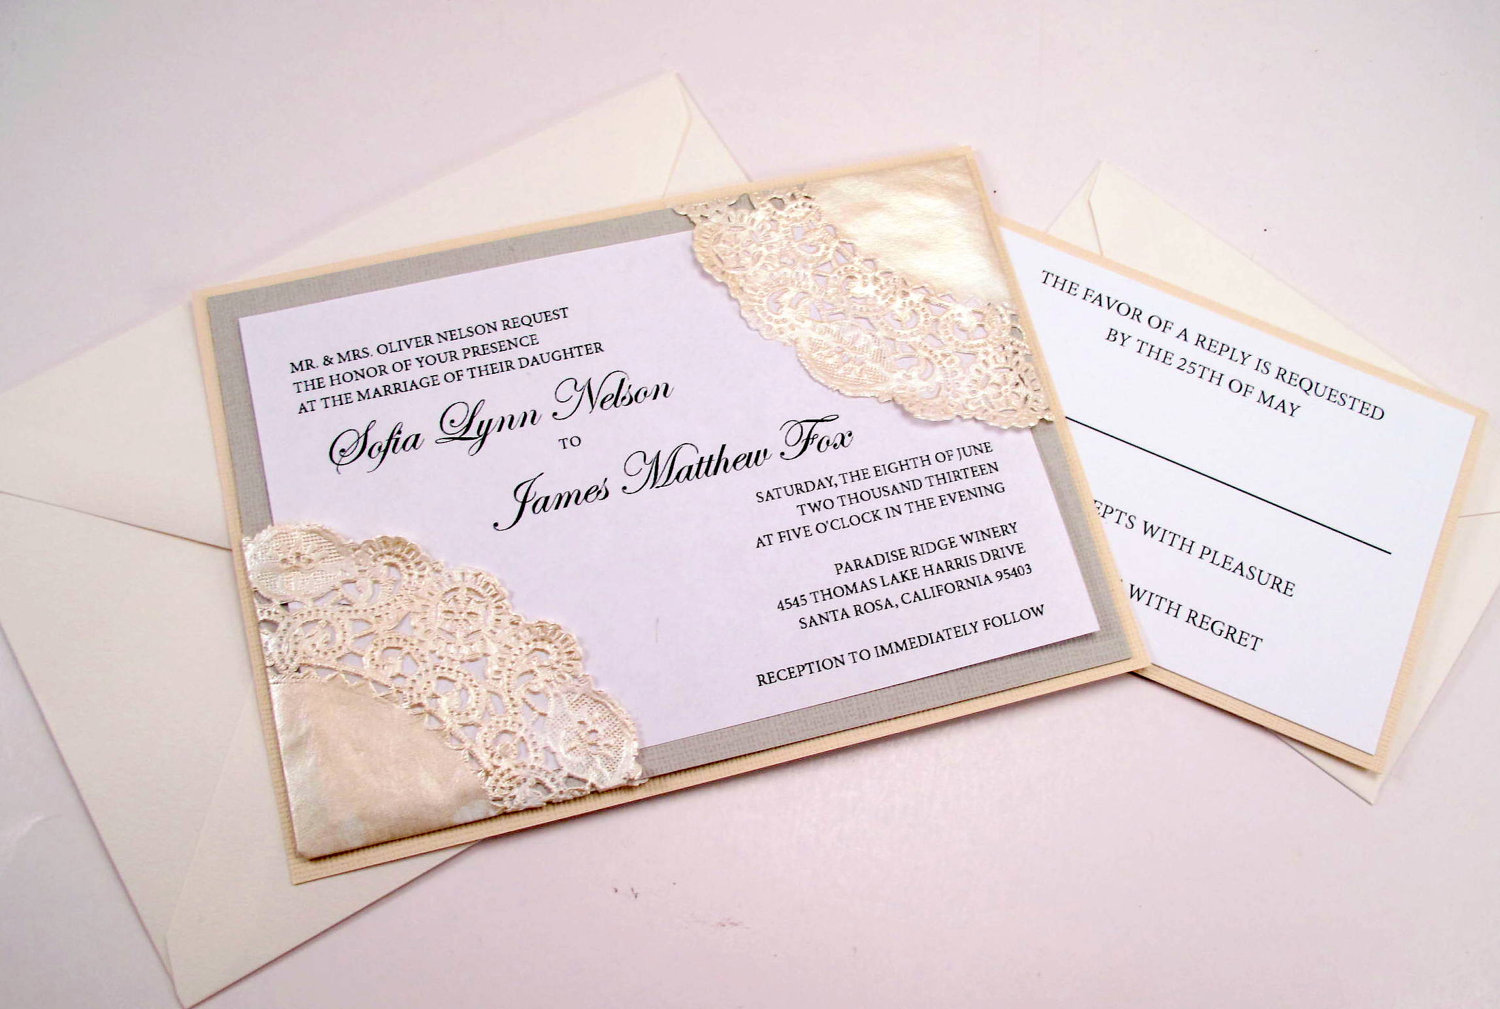 Lace-doily-wedding-invitation.original